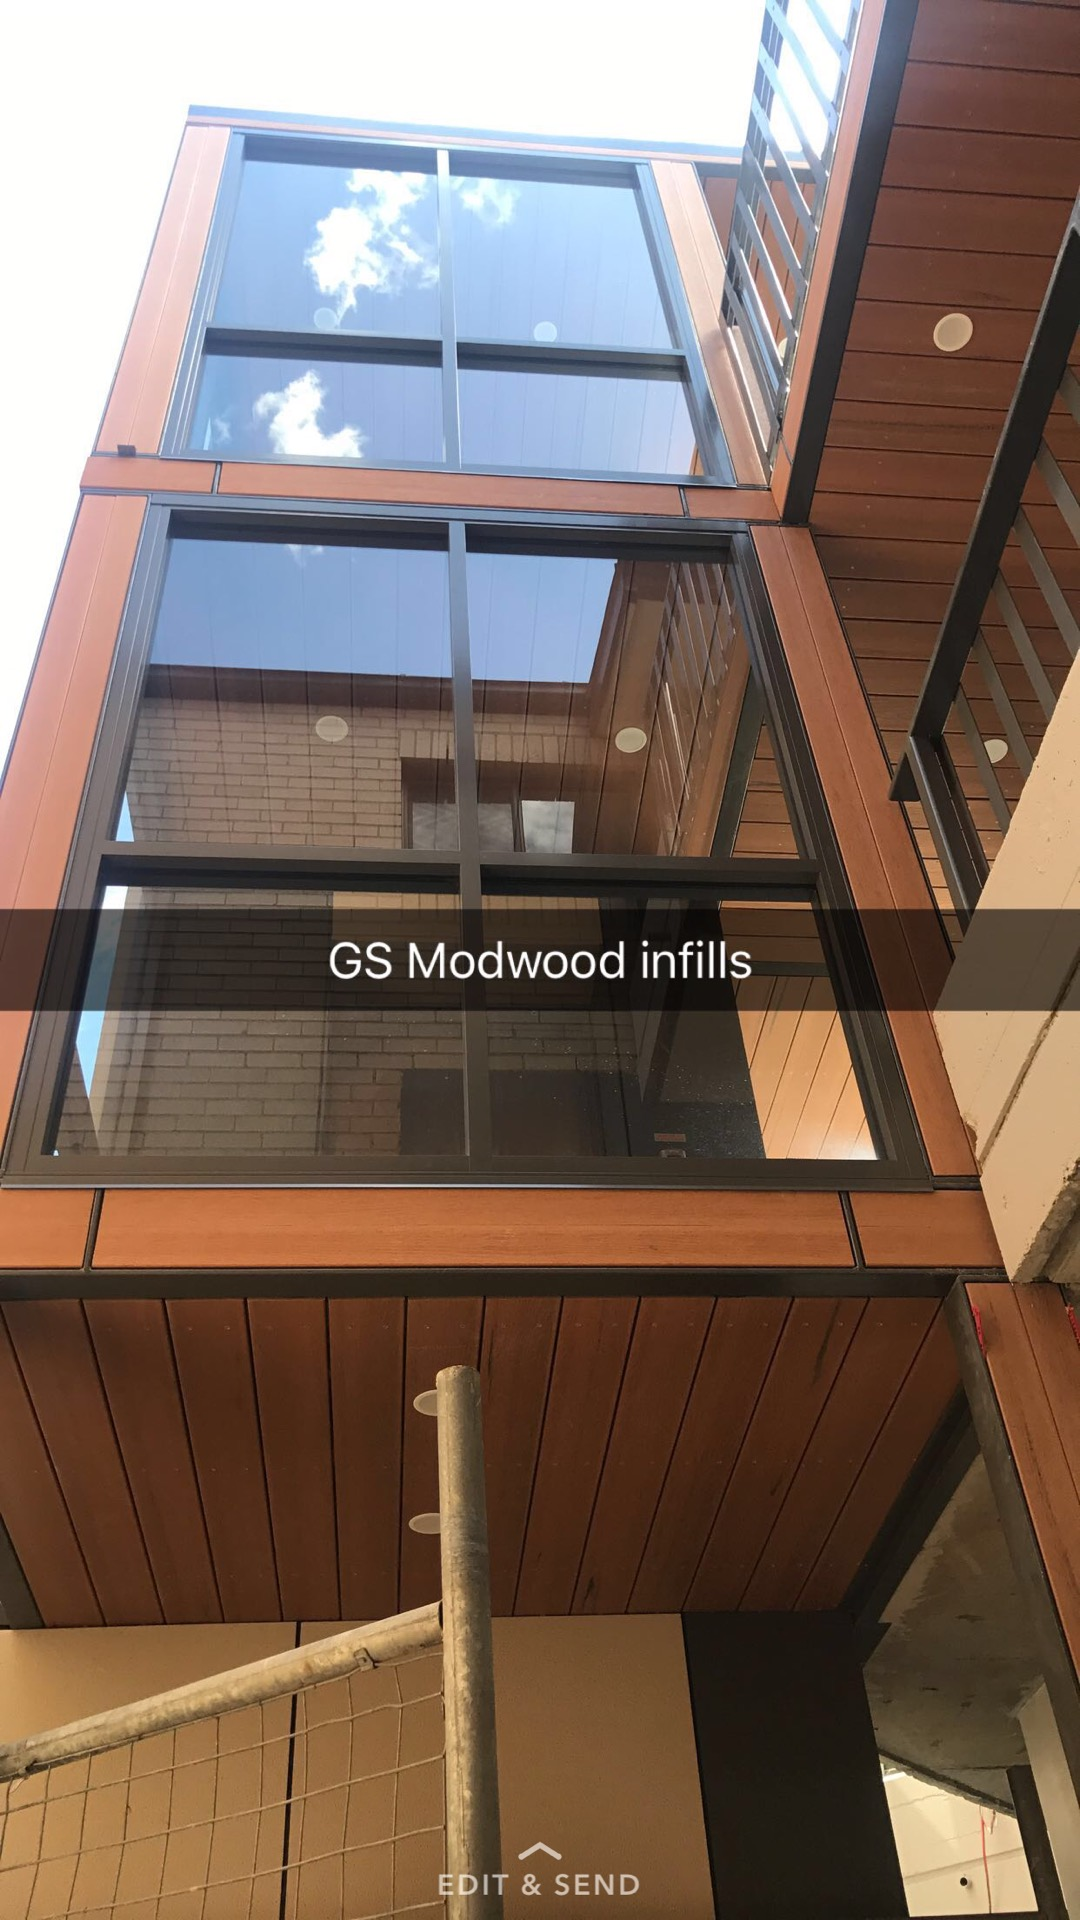 GS Modwood ceilings and infills  Ryde, NSW